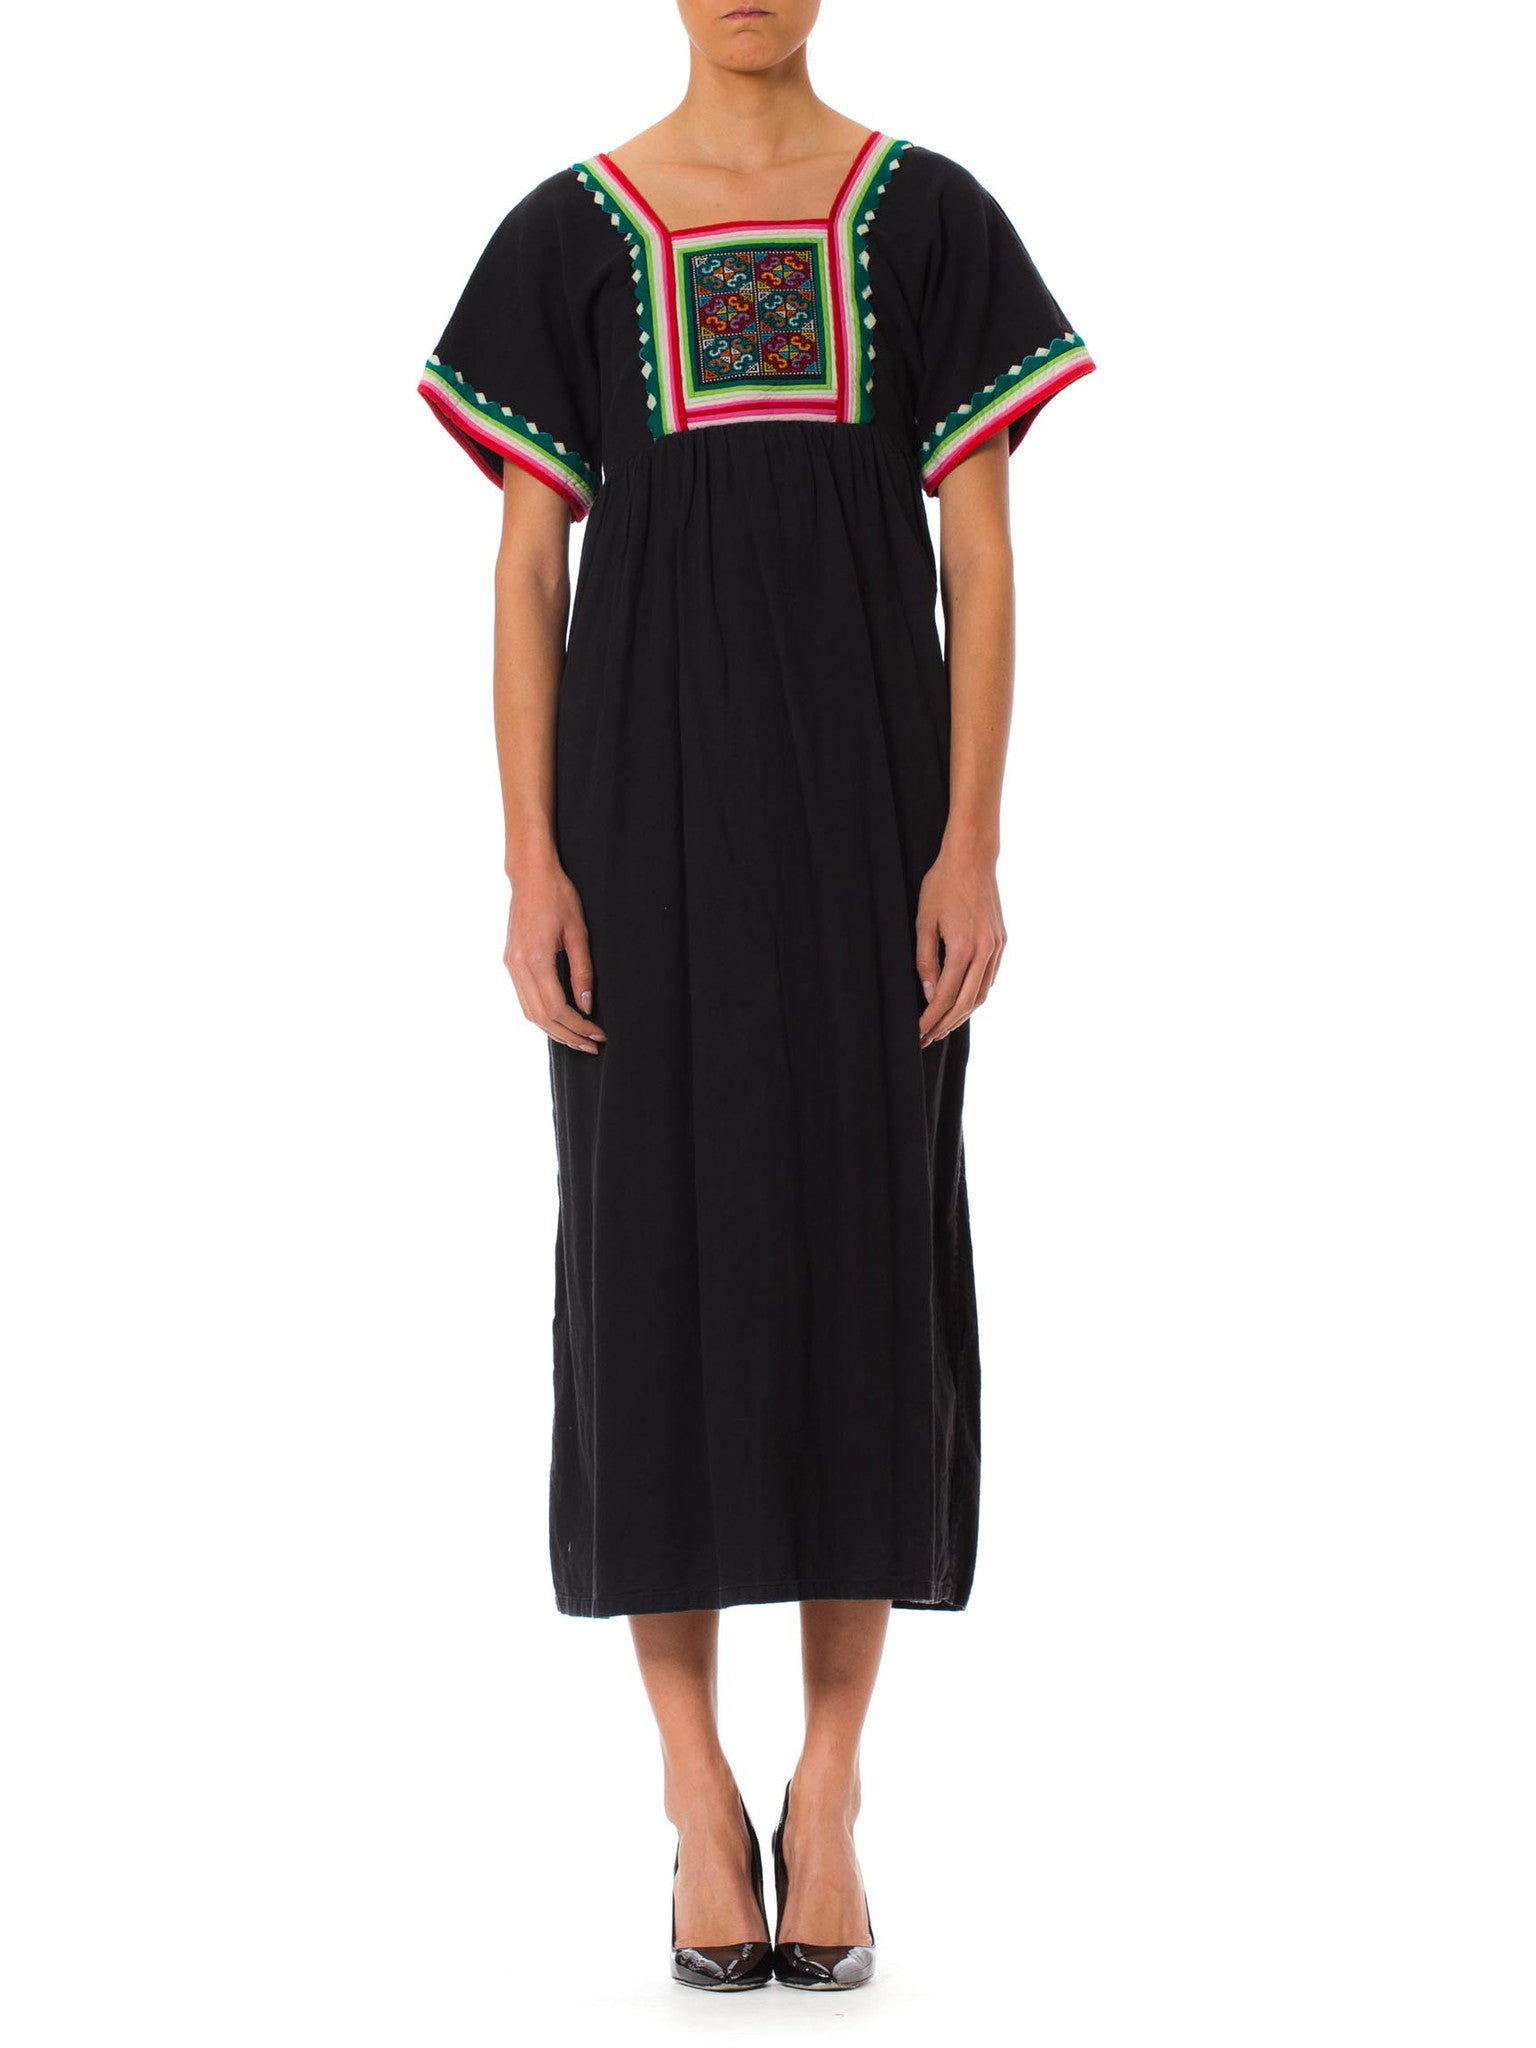 1960s Afghan Ethnic Black Caftan Dress